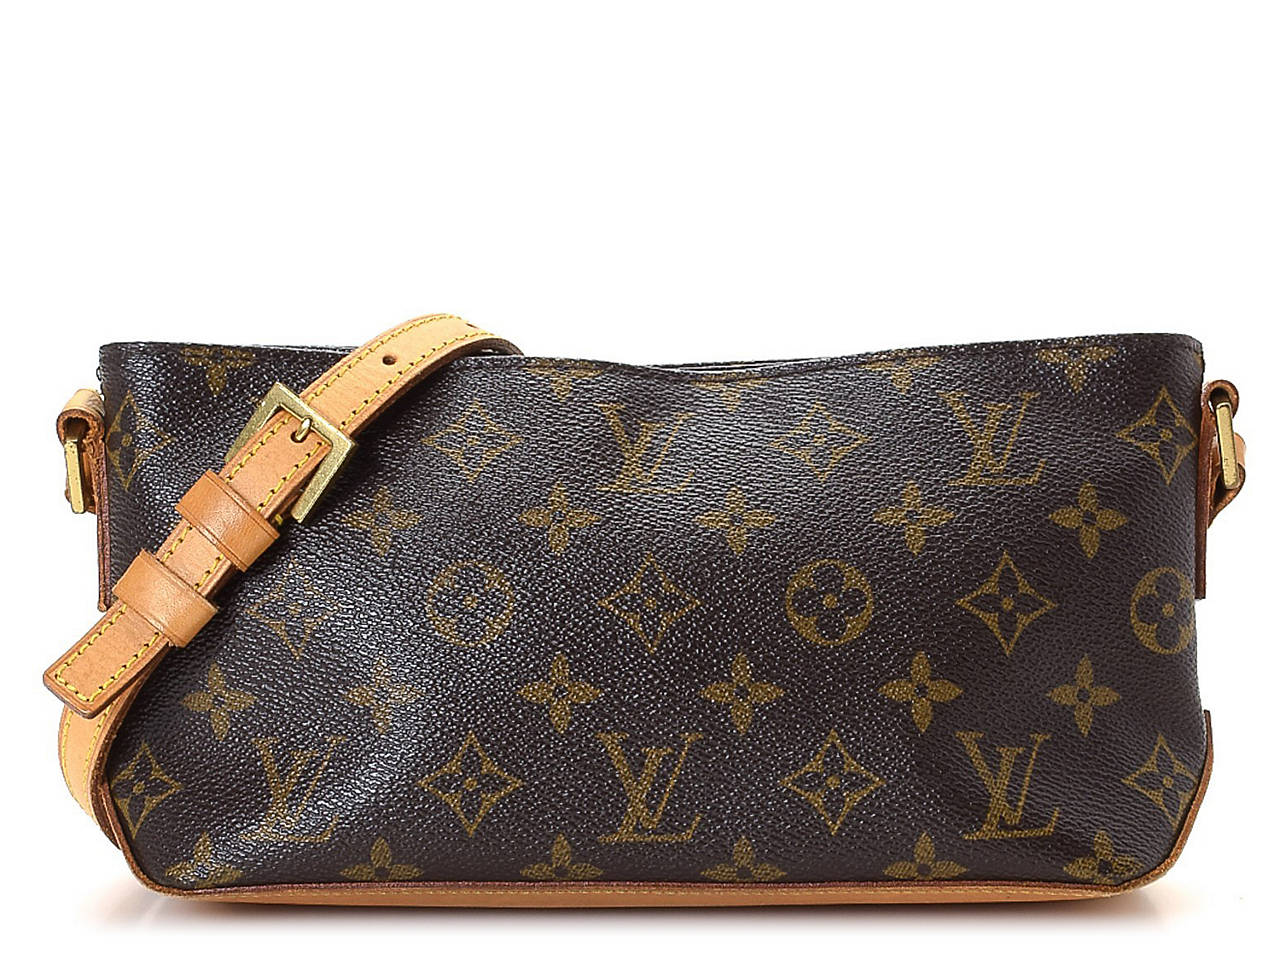 Louis Vuitton - Vintage Luxury Trotteur Shoulder Bag Women s ... d166ea307f86